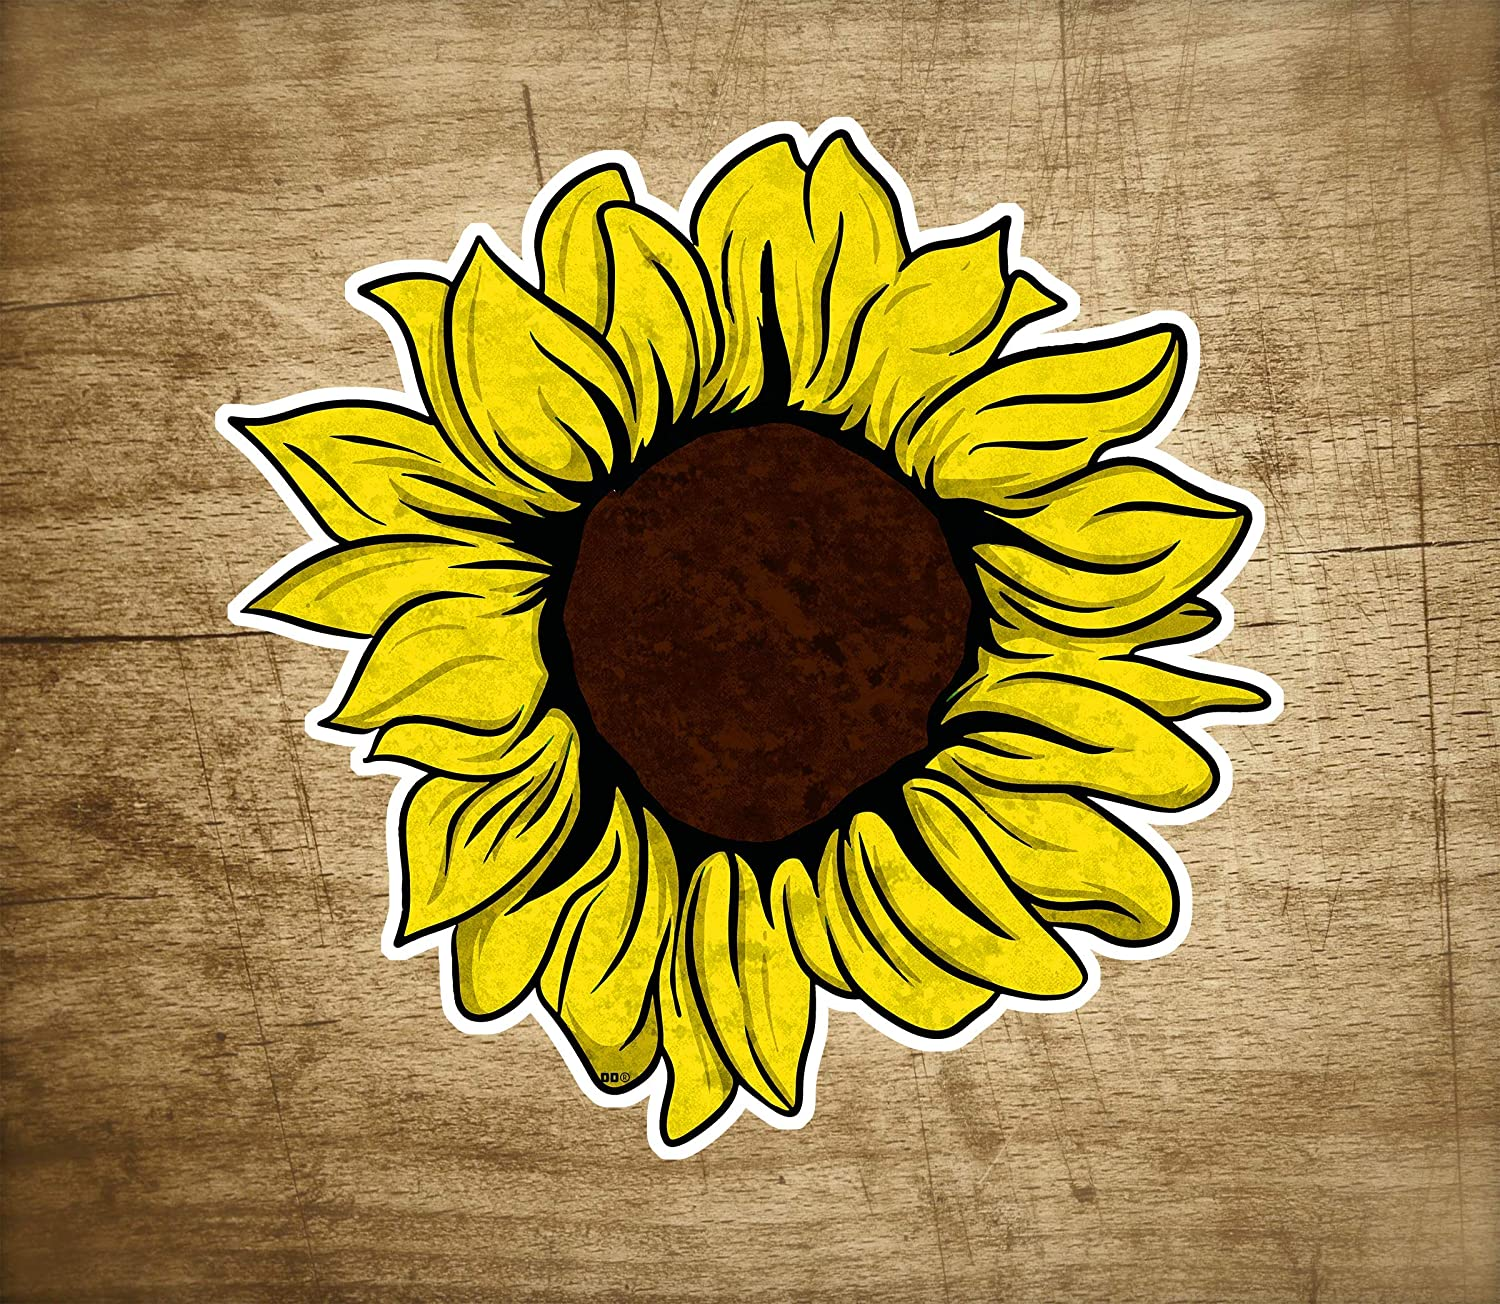 Yellow Sunflower Decal Sticker Laptop Vehicle Car Truck Window Laptop Wall